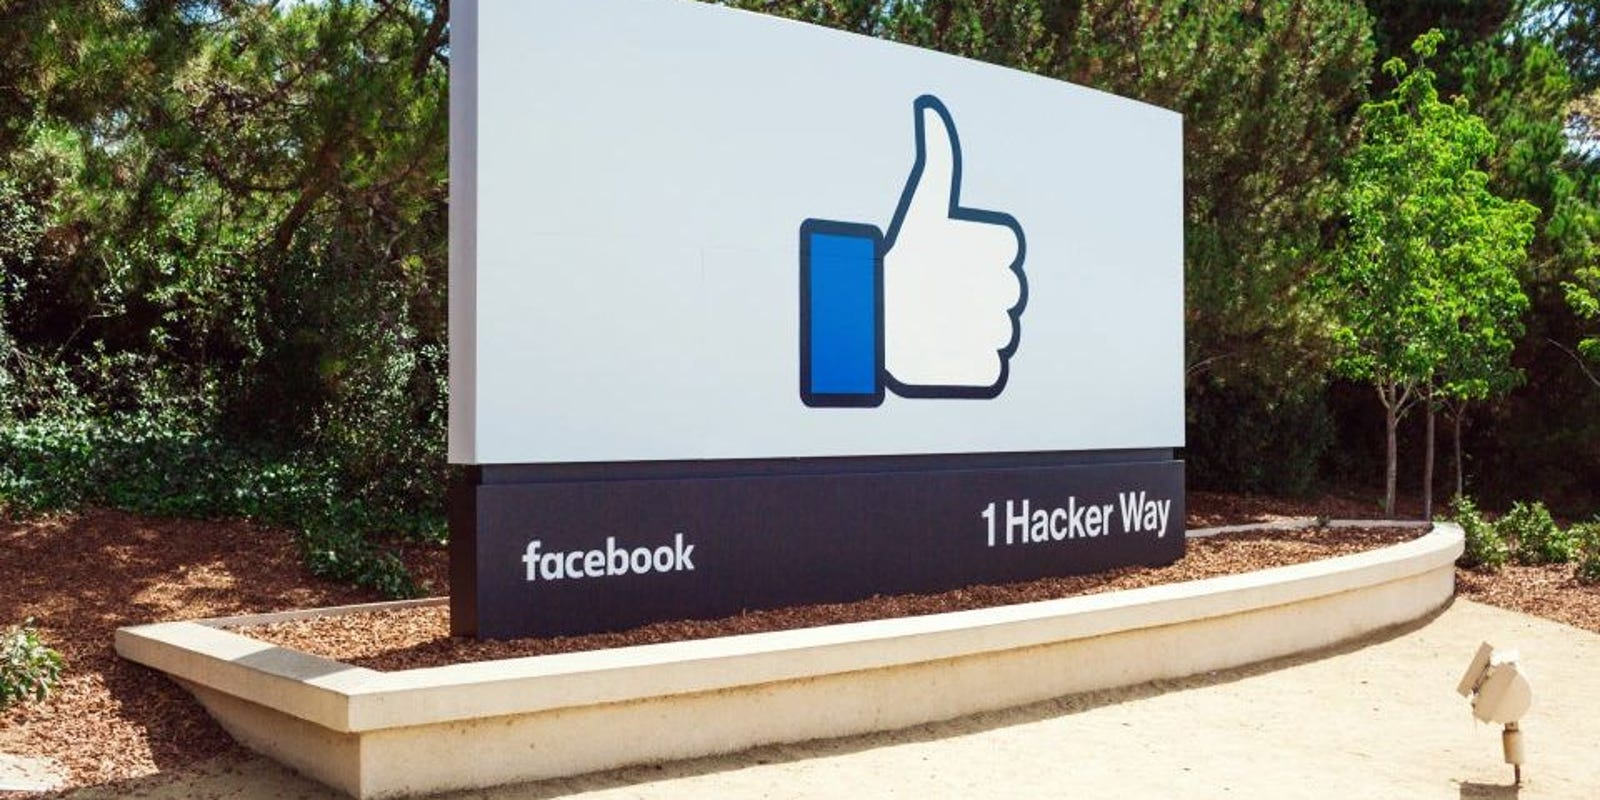 Facebook says it removed over 7M pieces of misleading COVID-19 content